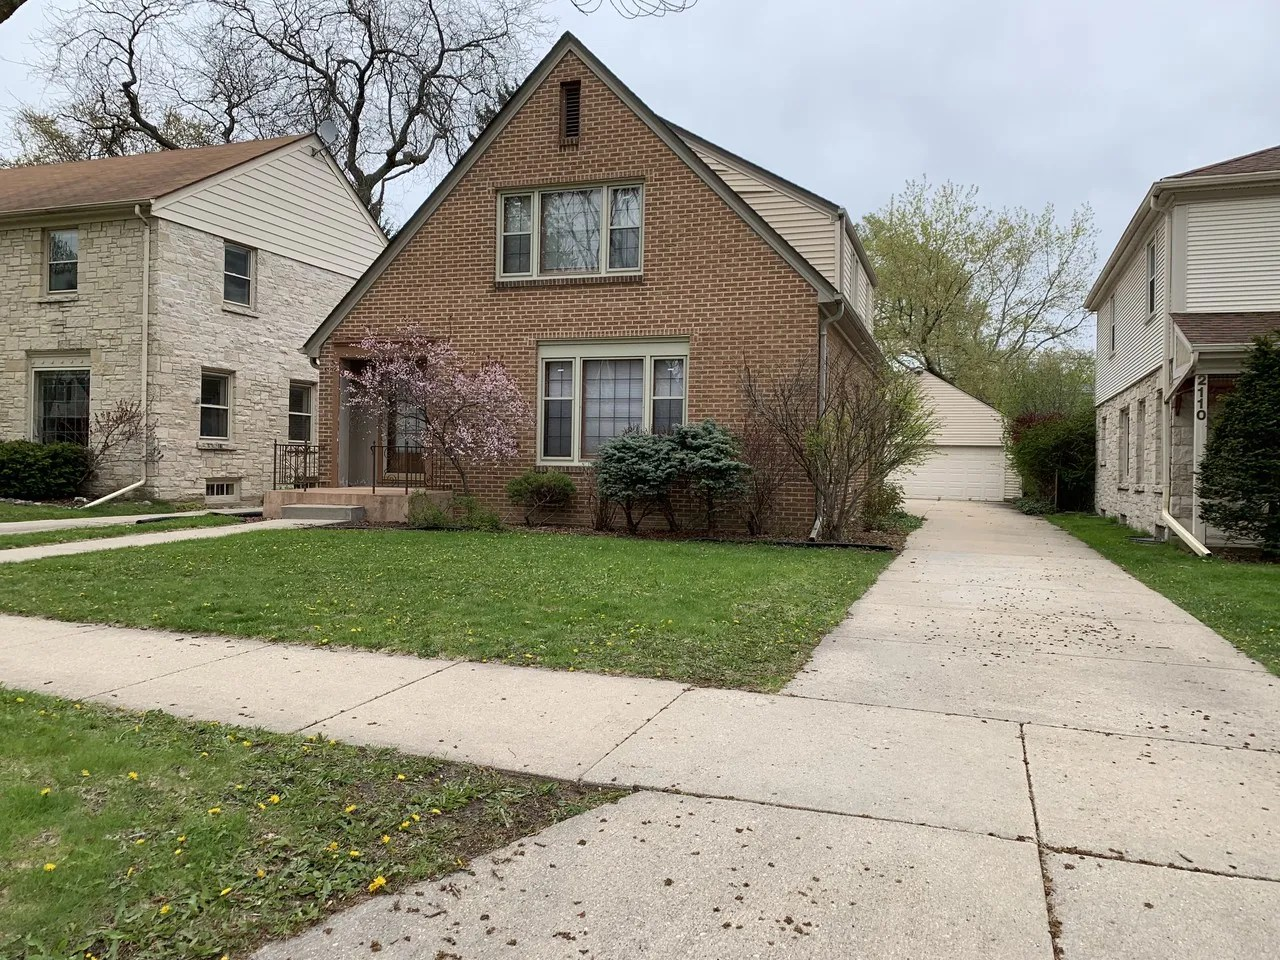 2114 North 86th Street #Upper, Wauwatosa, WI 53226 1